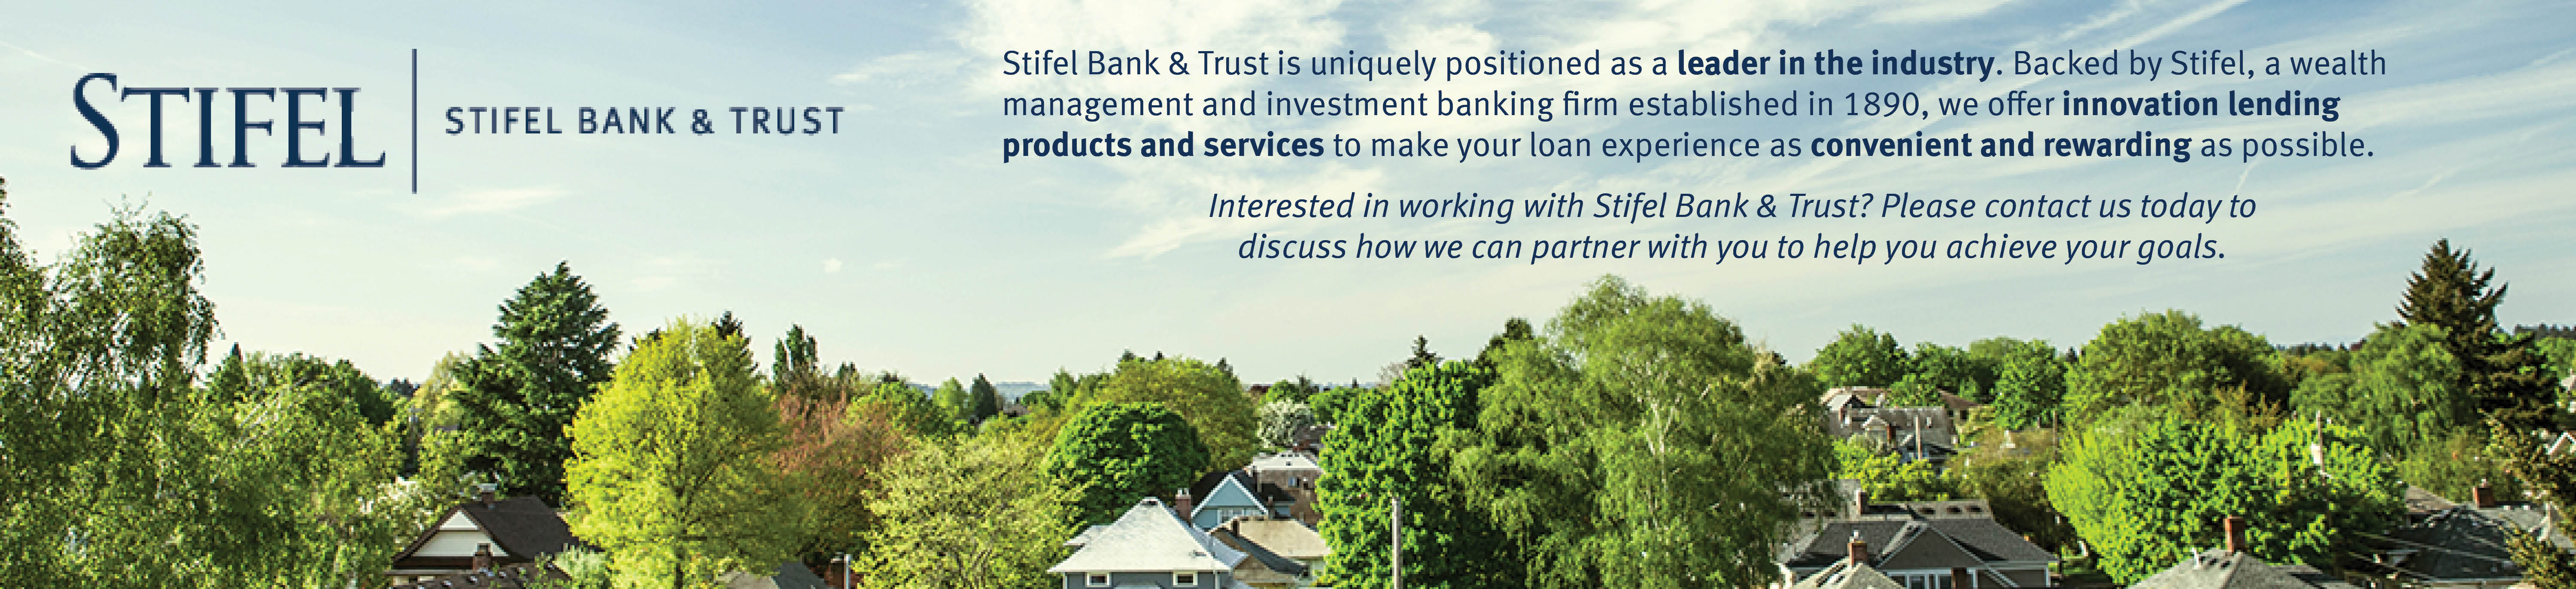 Stifel Bank & Trust | Home Lending in all 50 States